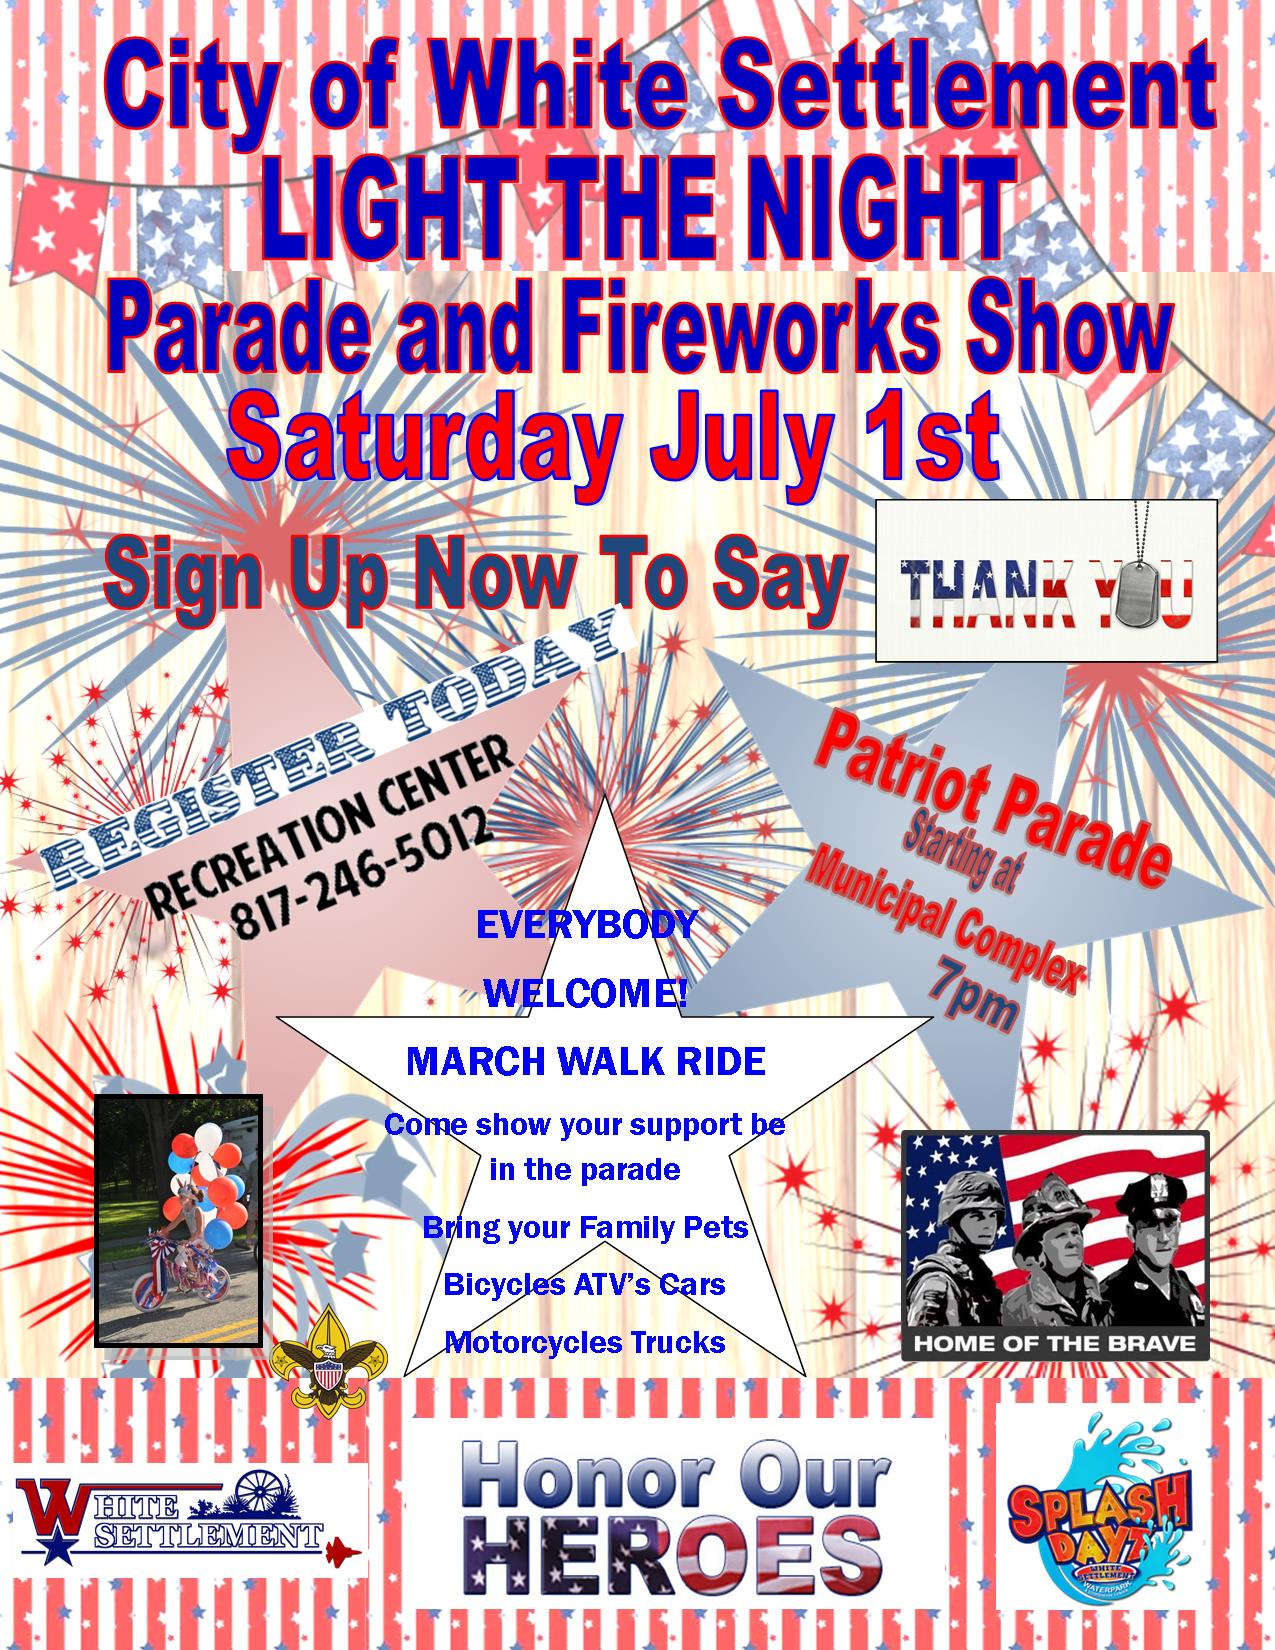 Light The Night – Parade and Fireworks Show